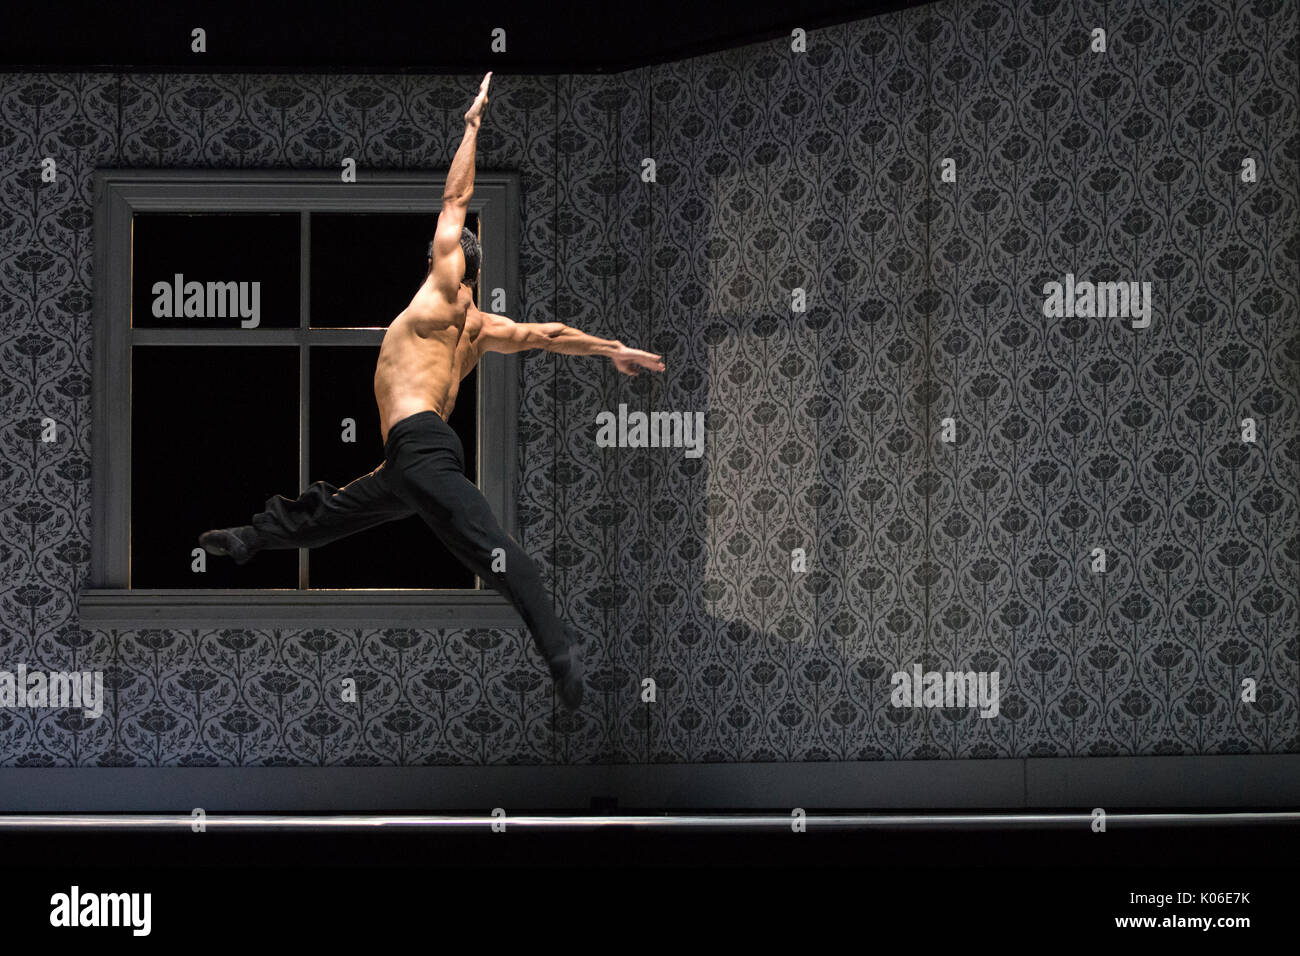 Edinburgh, Scotland, UK. 21st August, 2017. Jorge Nozal of one of the world's finest dance companies, the Nederlands Dans Theater (NDT), perform Paul Lightfoot's and Sol León's Shoot the Moon on the stage at the Edinburgh Playhouse during a dress rehearsal as part of the Edinburgh International Festival (EIF). Founded in 1959, this Dutch company has a long history of acclaimed shows at the EIF. Iain McGuinness / Alamy Live News - Stock Image